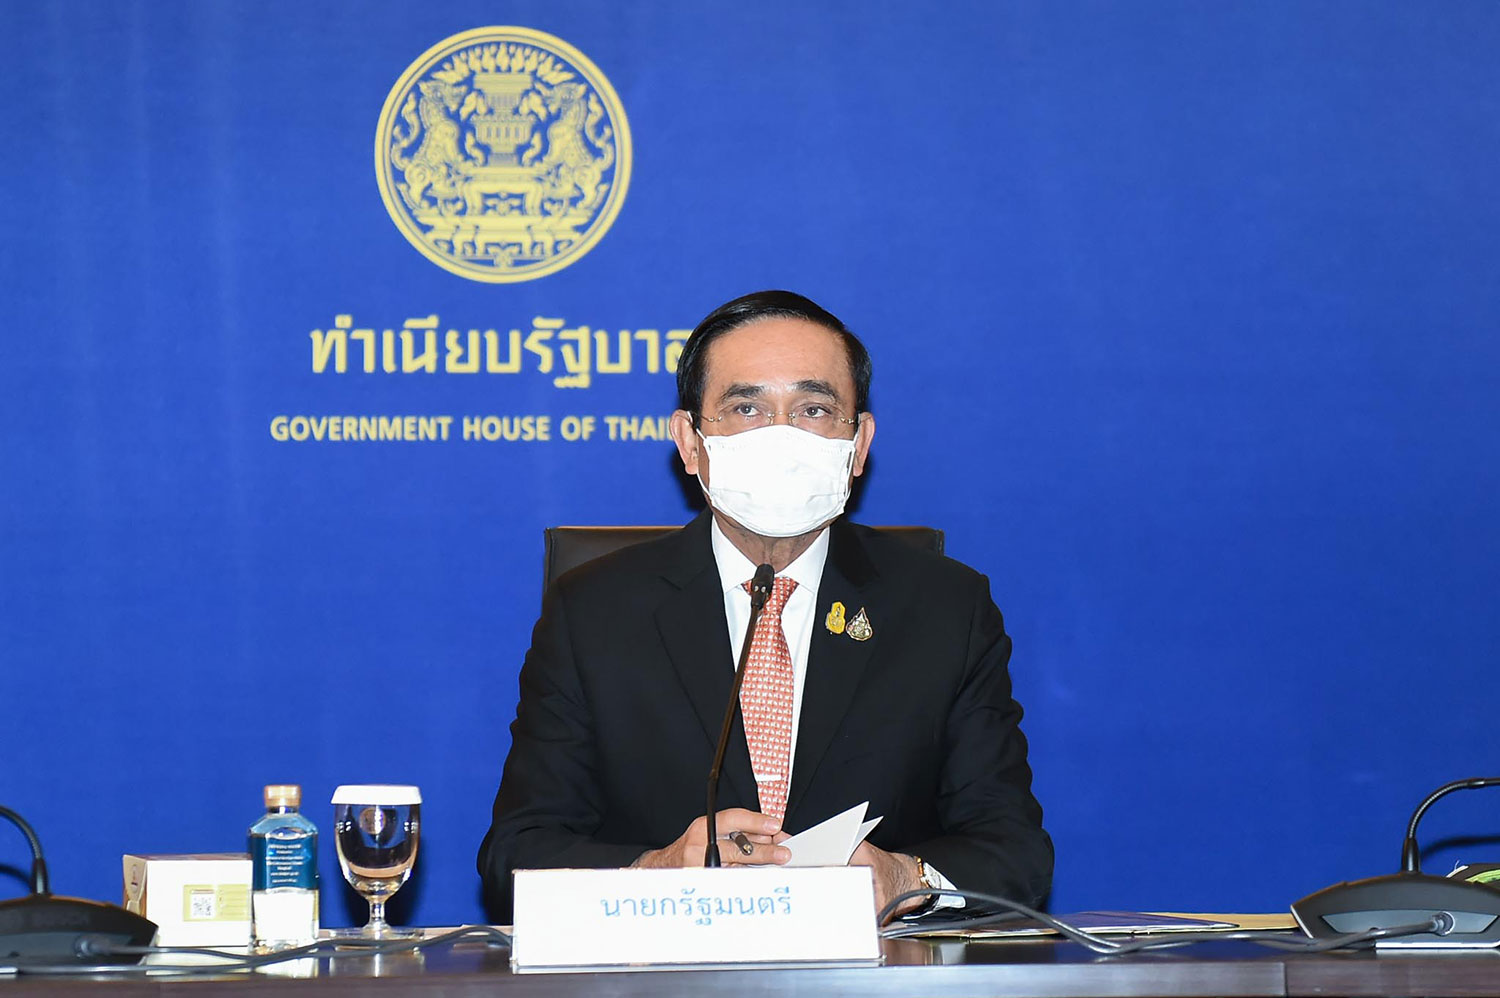 Thai CEOs propose strategy on post-pandemic economic recovery